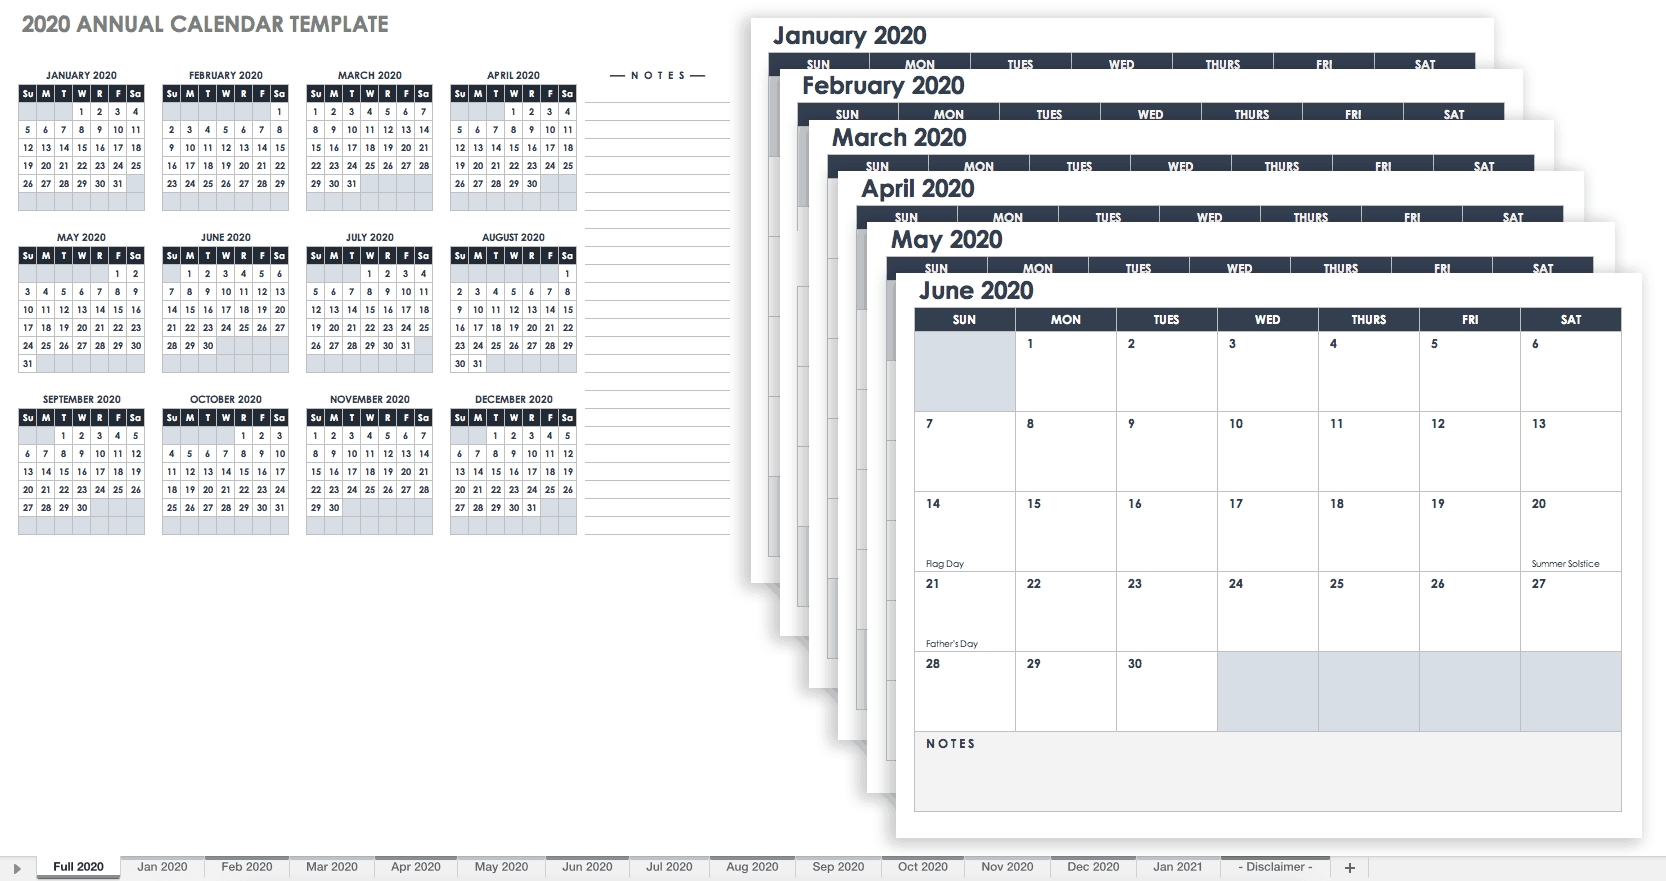 Free Blank Calendar Templates - Smartsheet throughout Microsoft Word Calendar Template 2019-2020